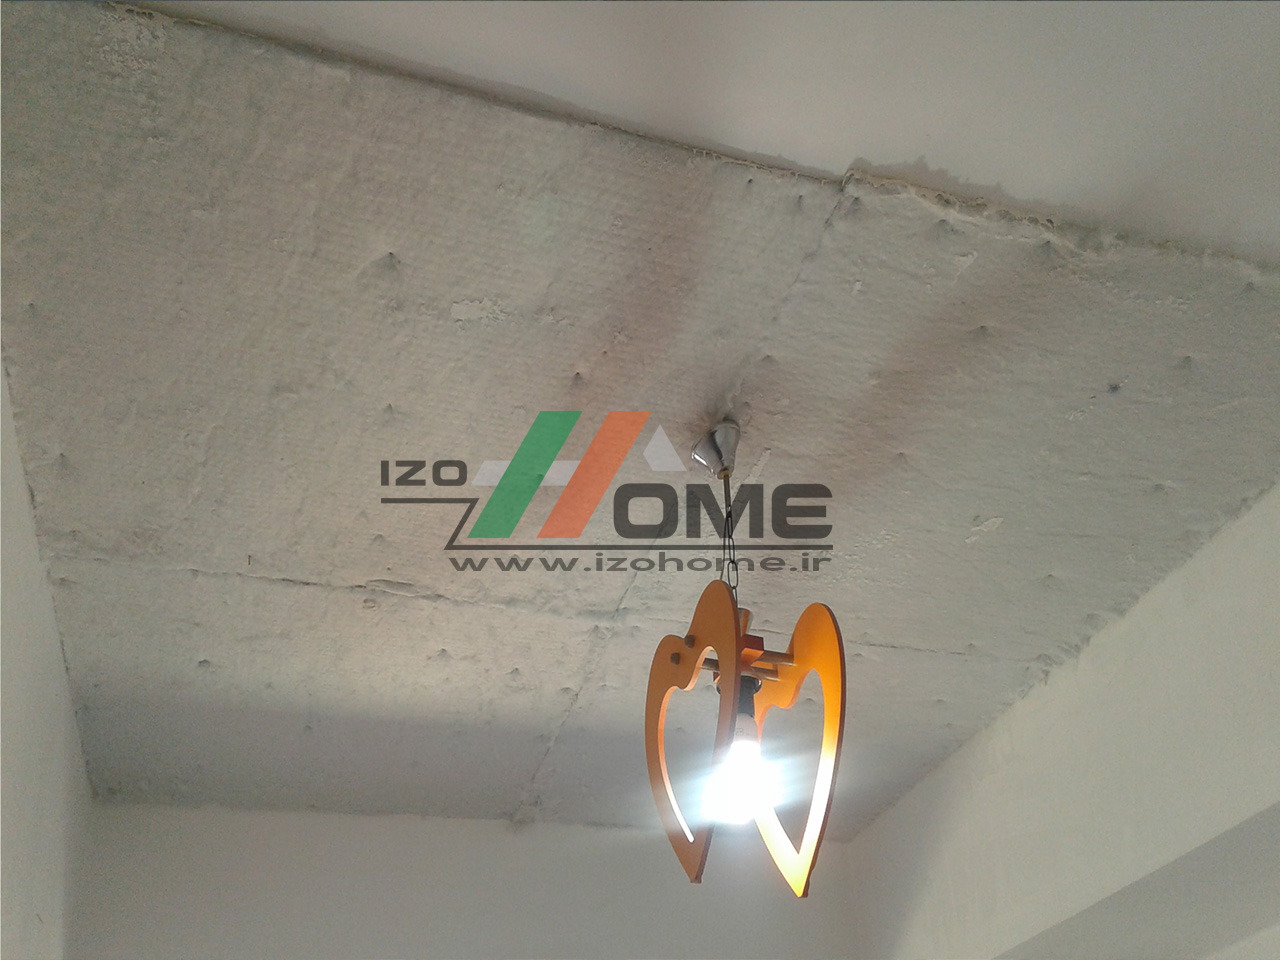 izohome43 - Thermal insulation for the roof